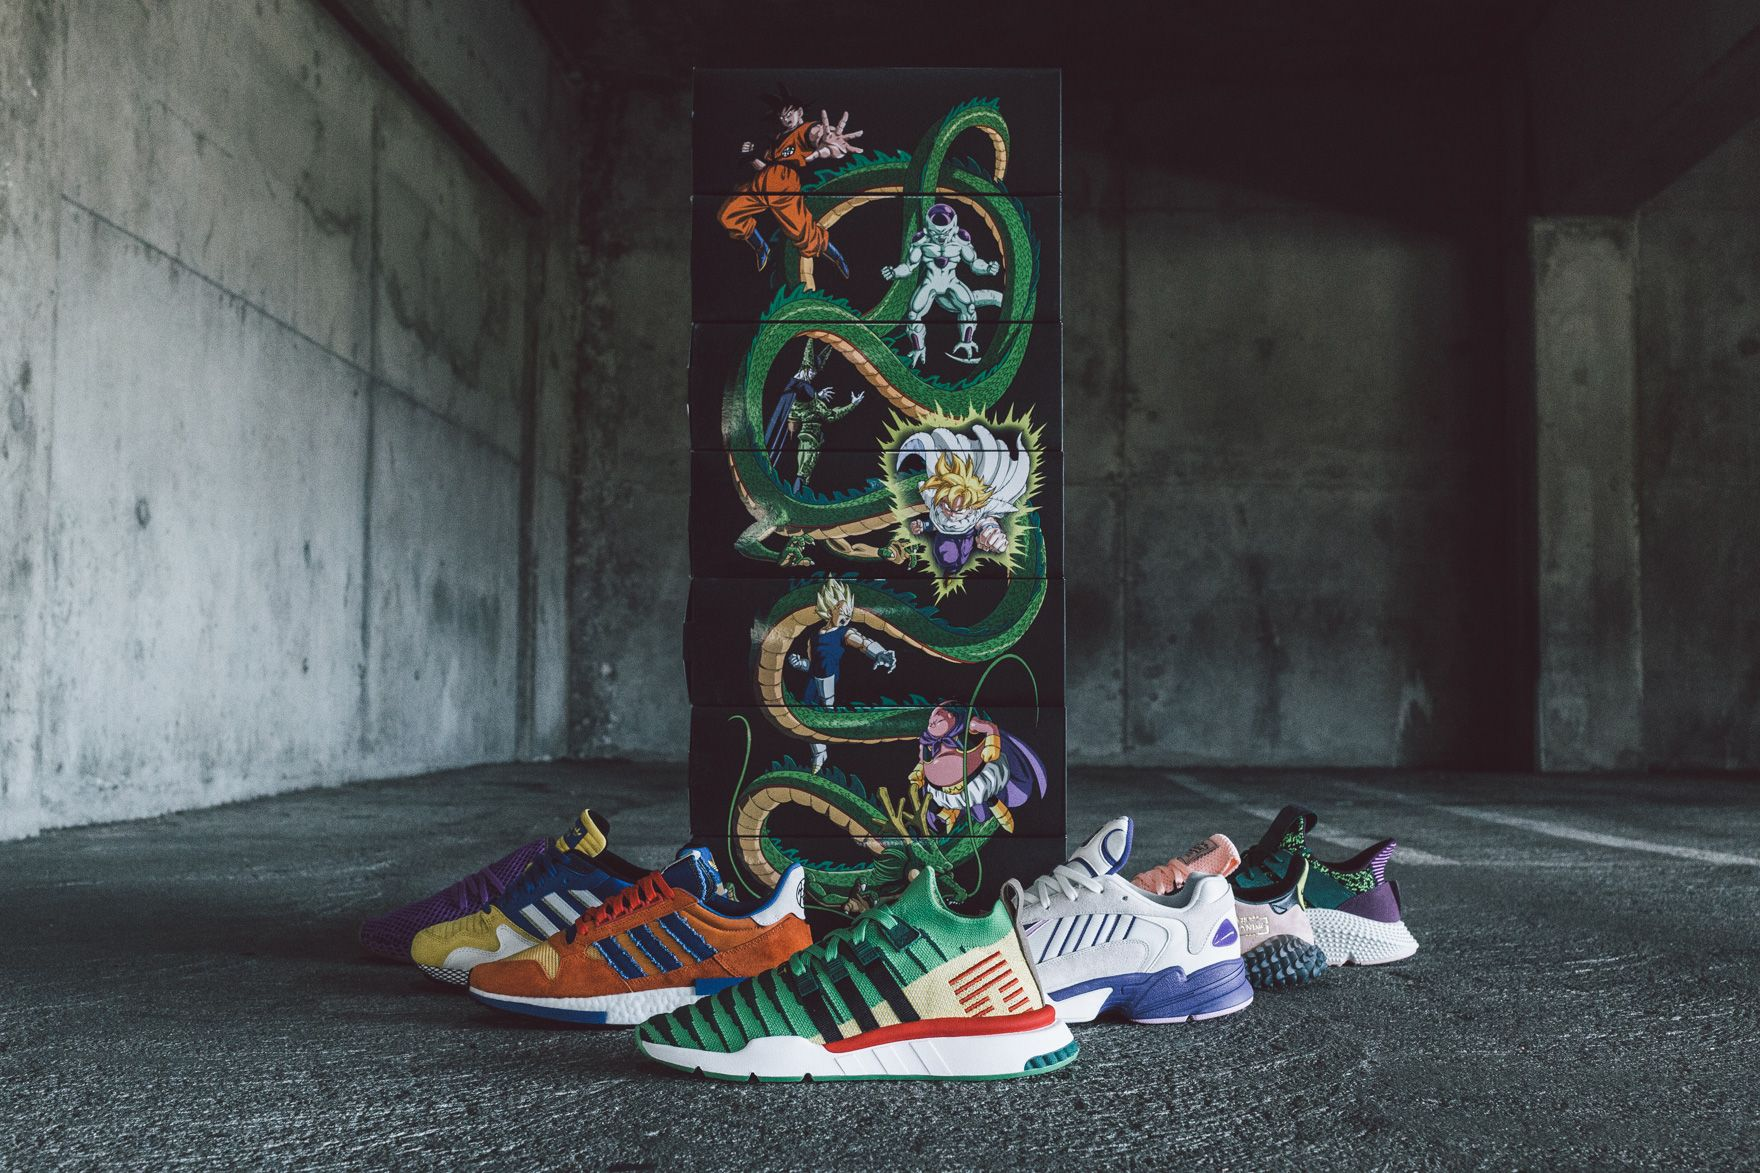 BAIT Shows Off Full 'Dragon Ball Z' x adidas Collection